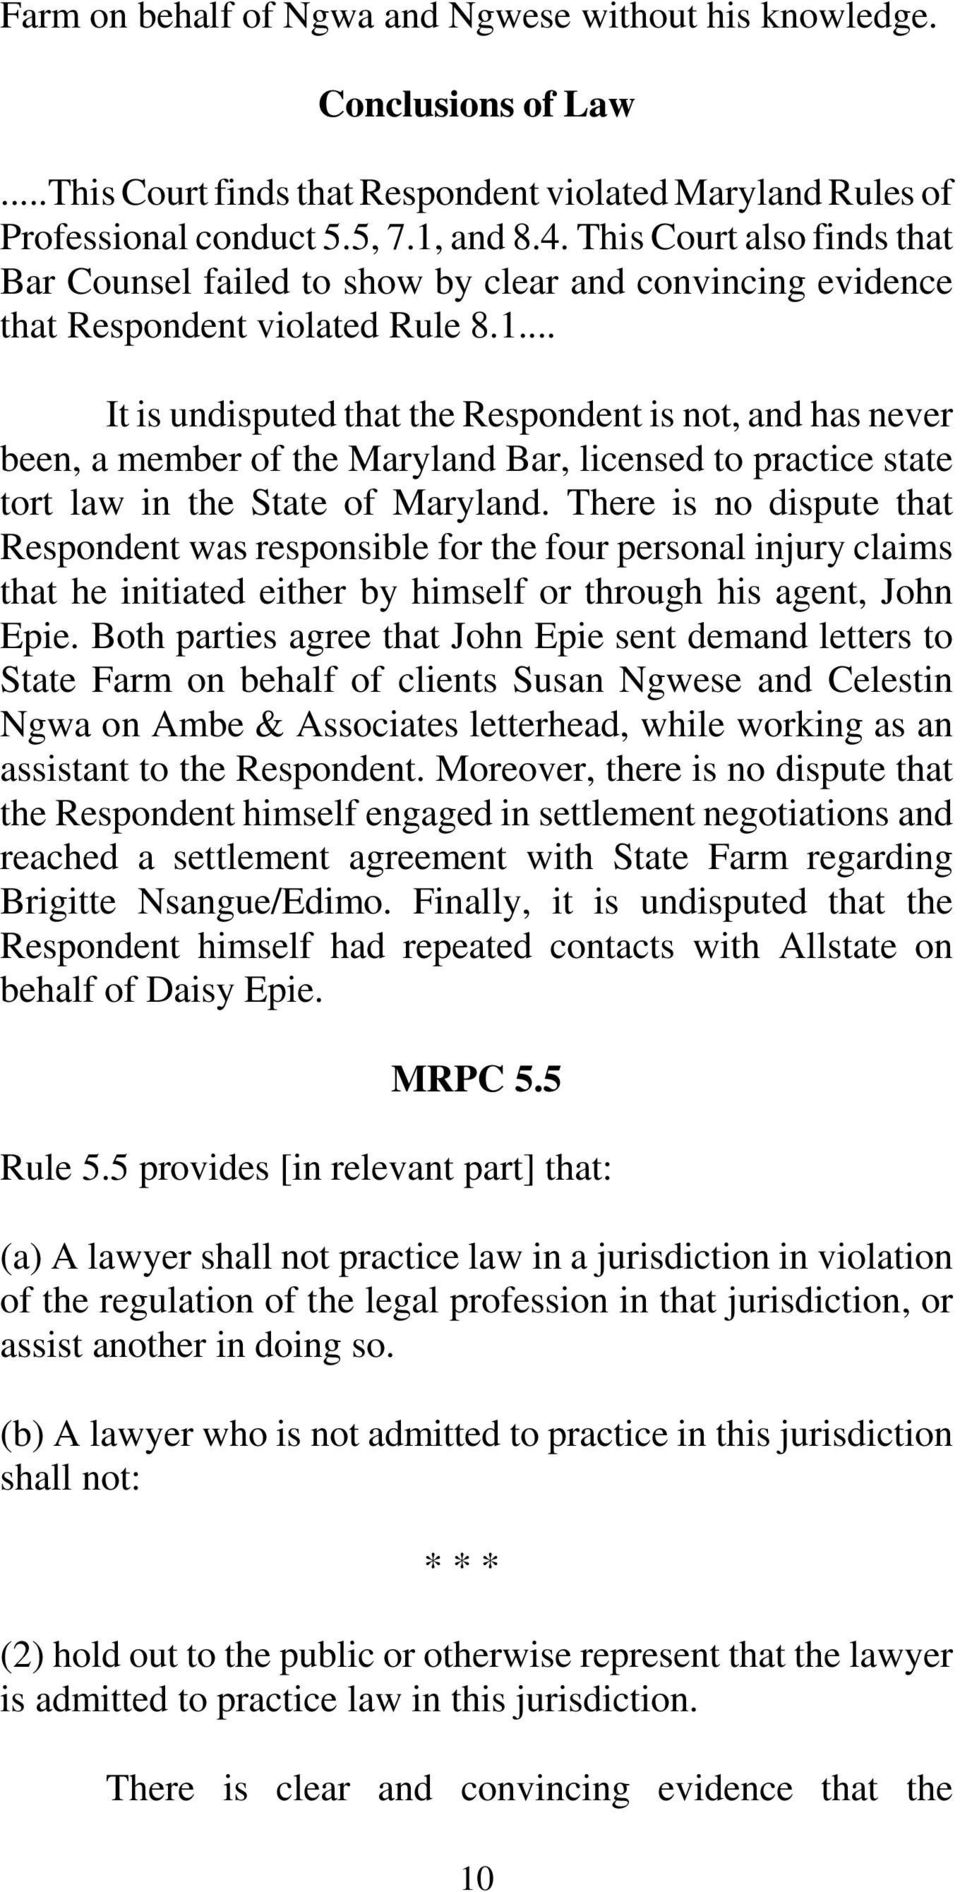 .. It is undisputed that the Respondent is not, and has never been, a member of the Maryland Bar, licensed to practice state tort law in the State of Maryland.